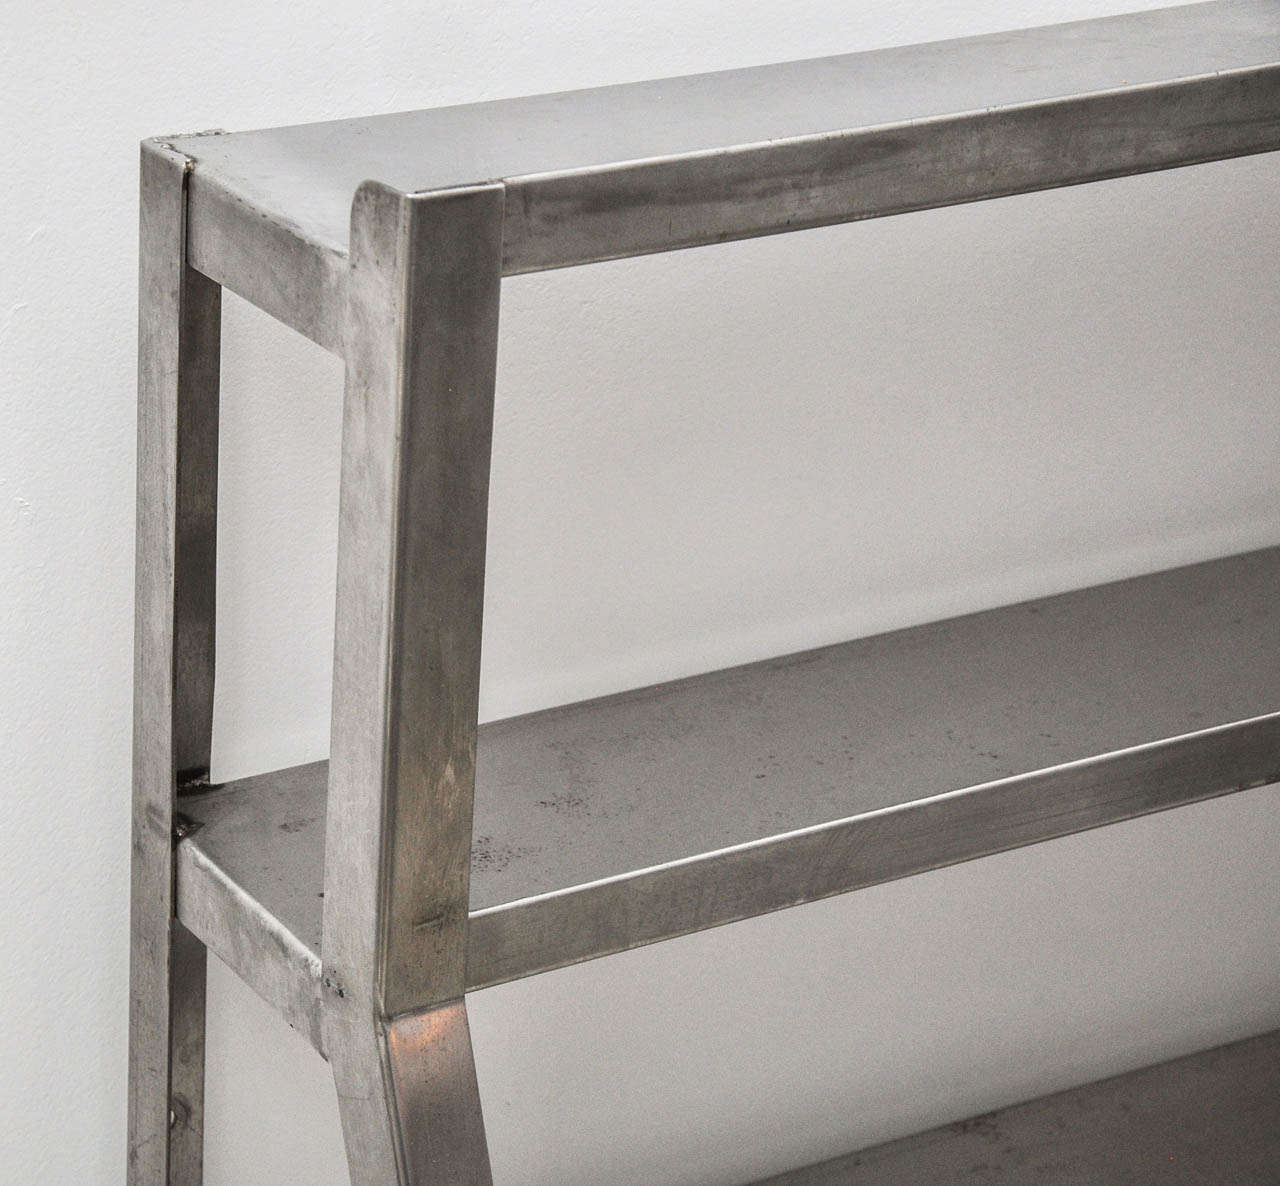 Stainless Steel Restaurant Shelving At 1stdibs